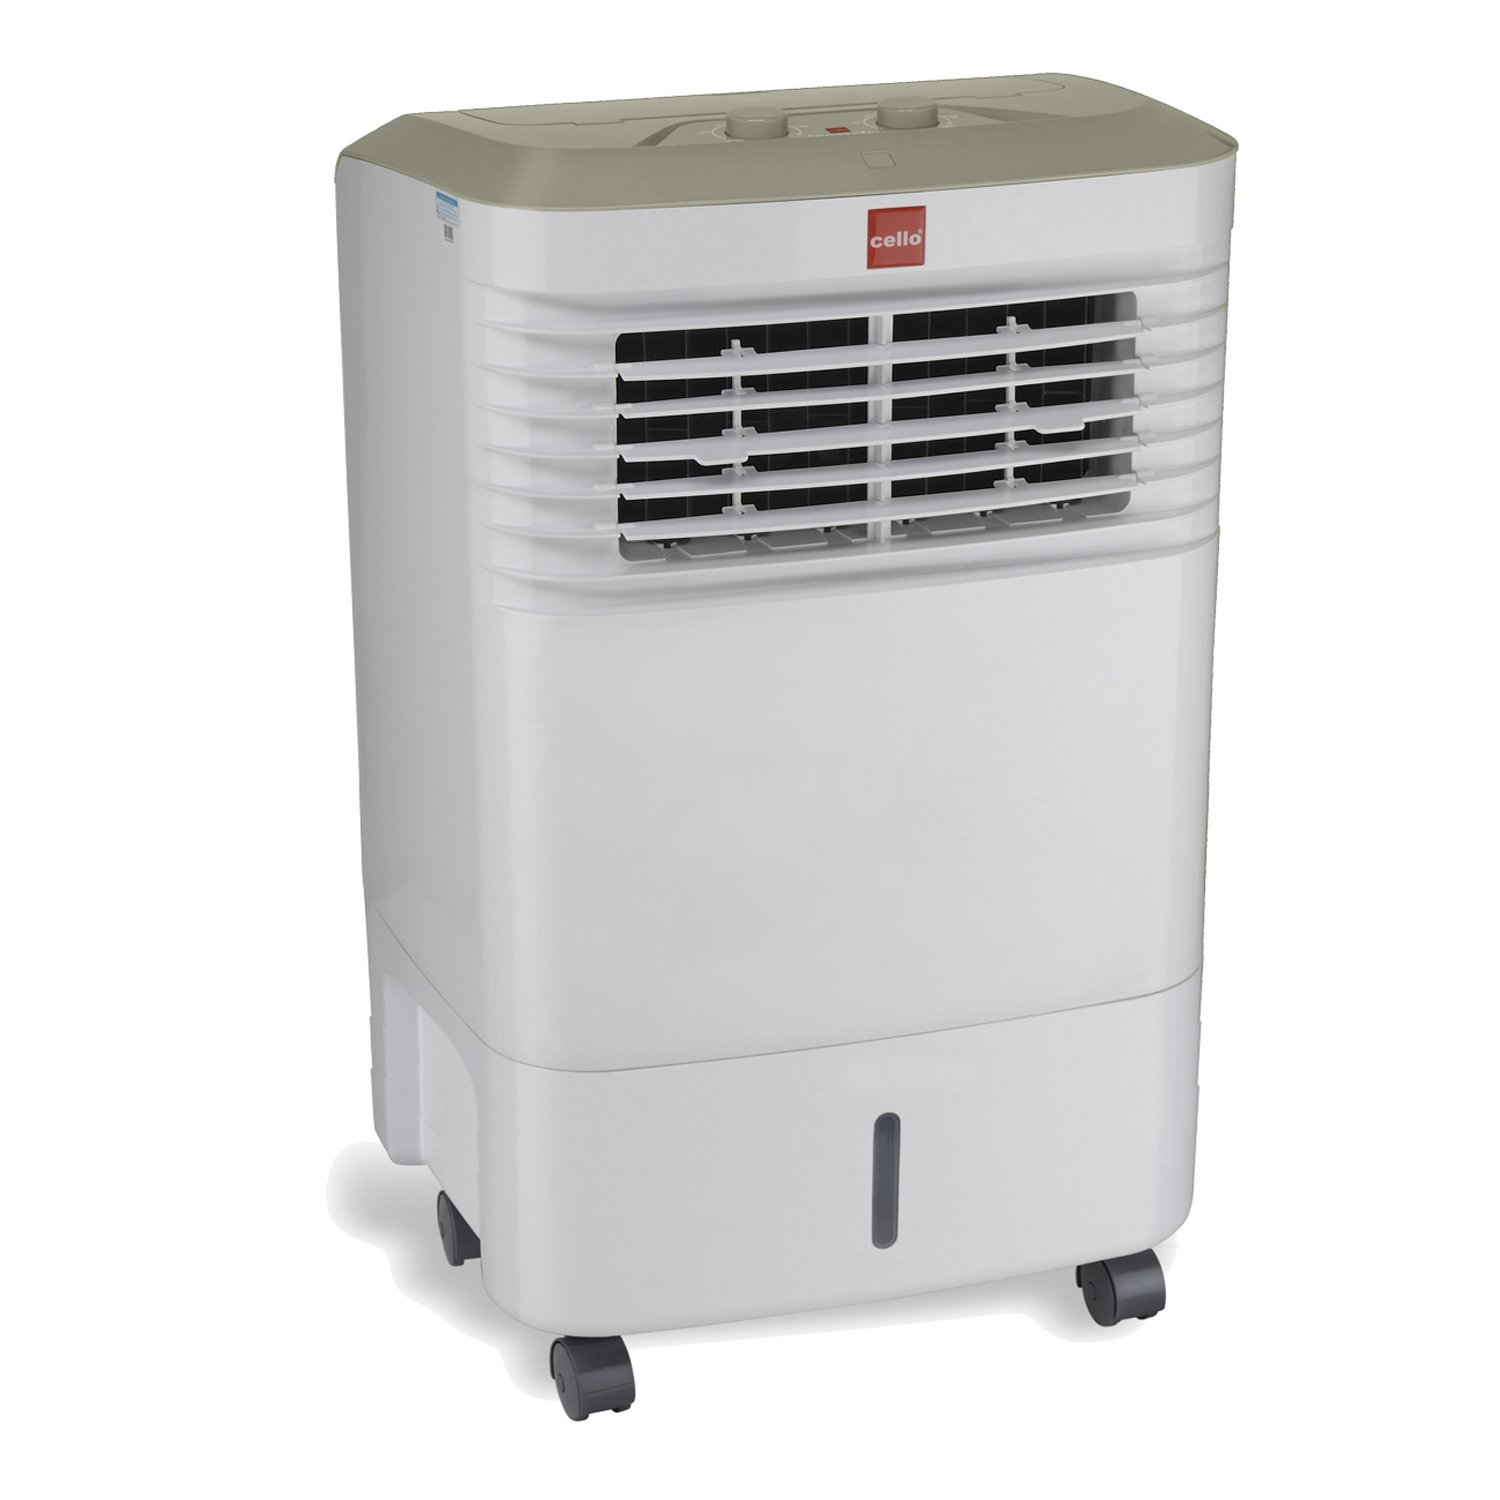 Cello 30ltr TRENDY 30 Personal Air Cooler Image